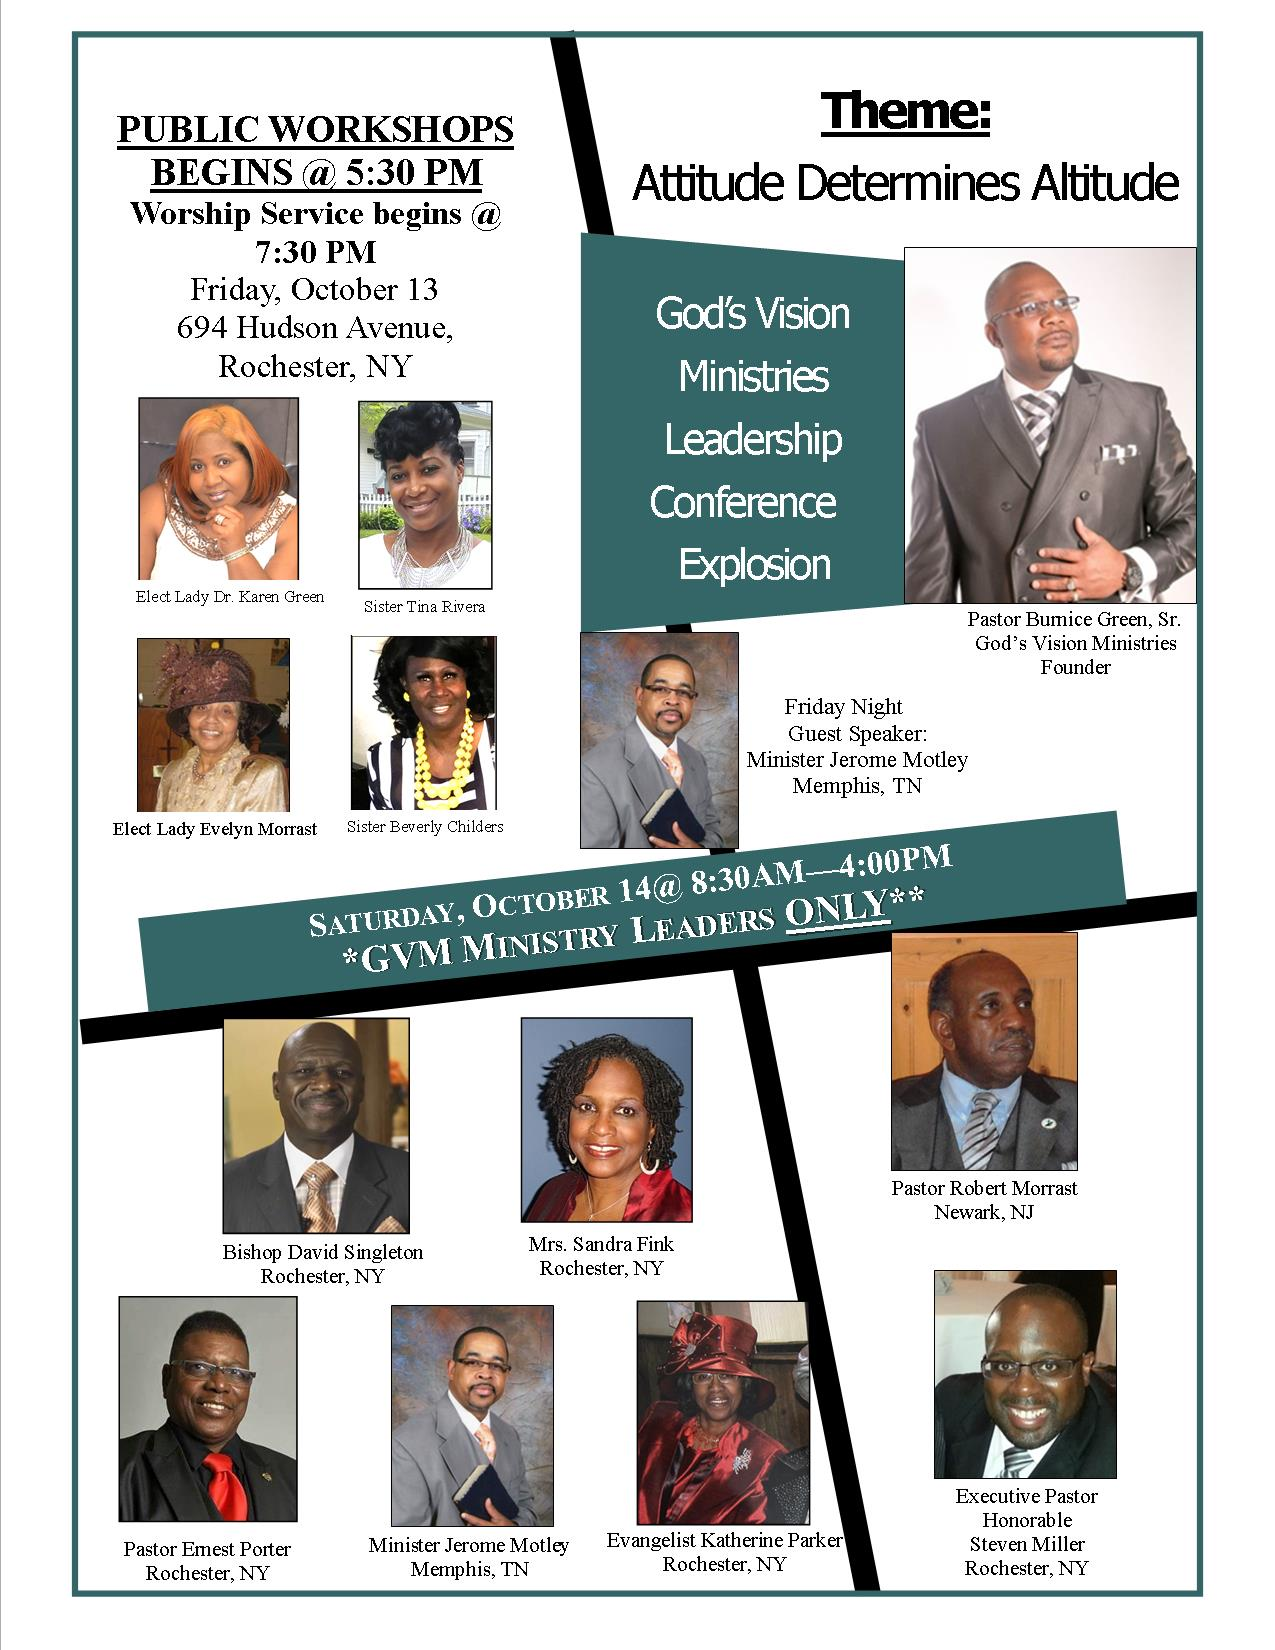 God's Vision Ministries | Failure is not an option